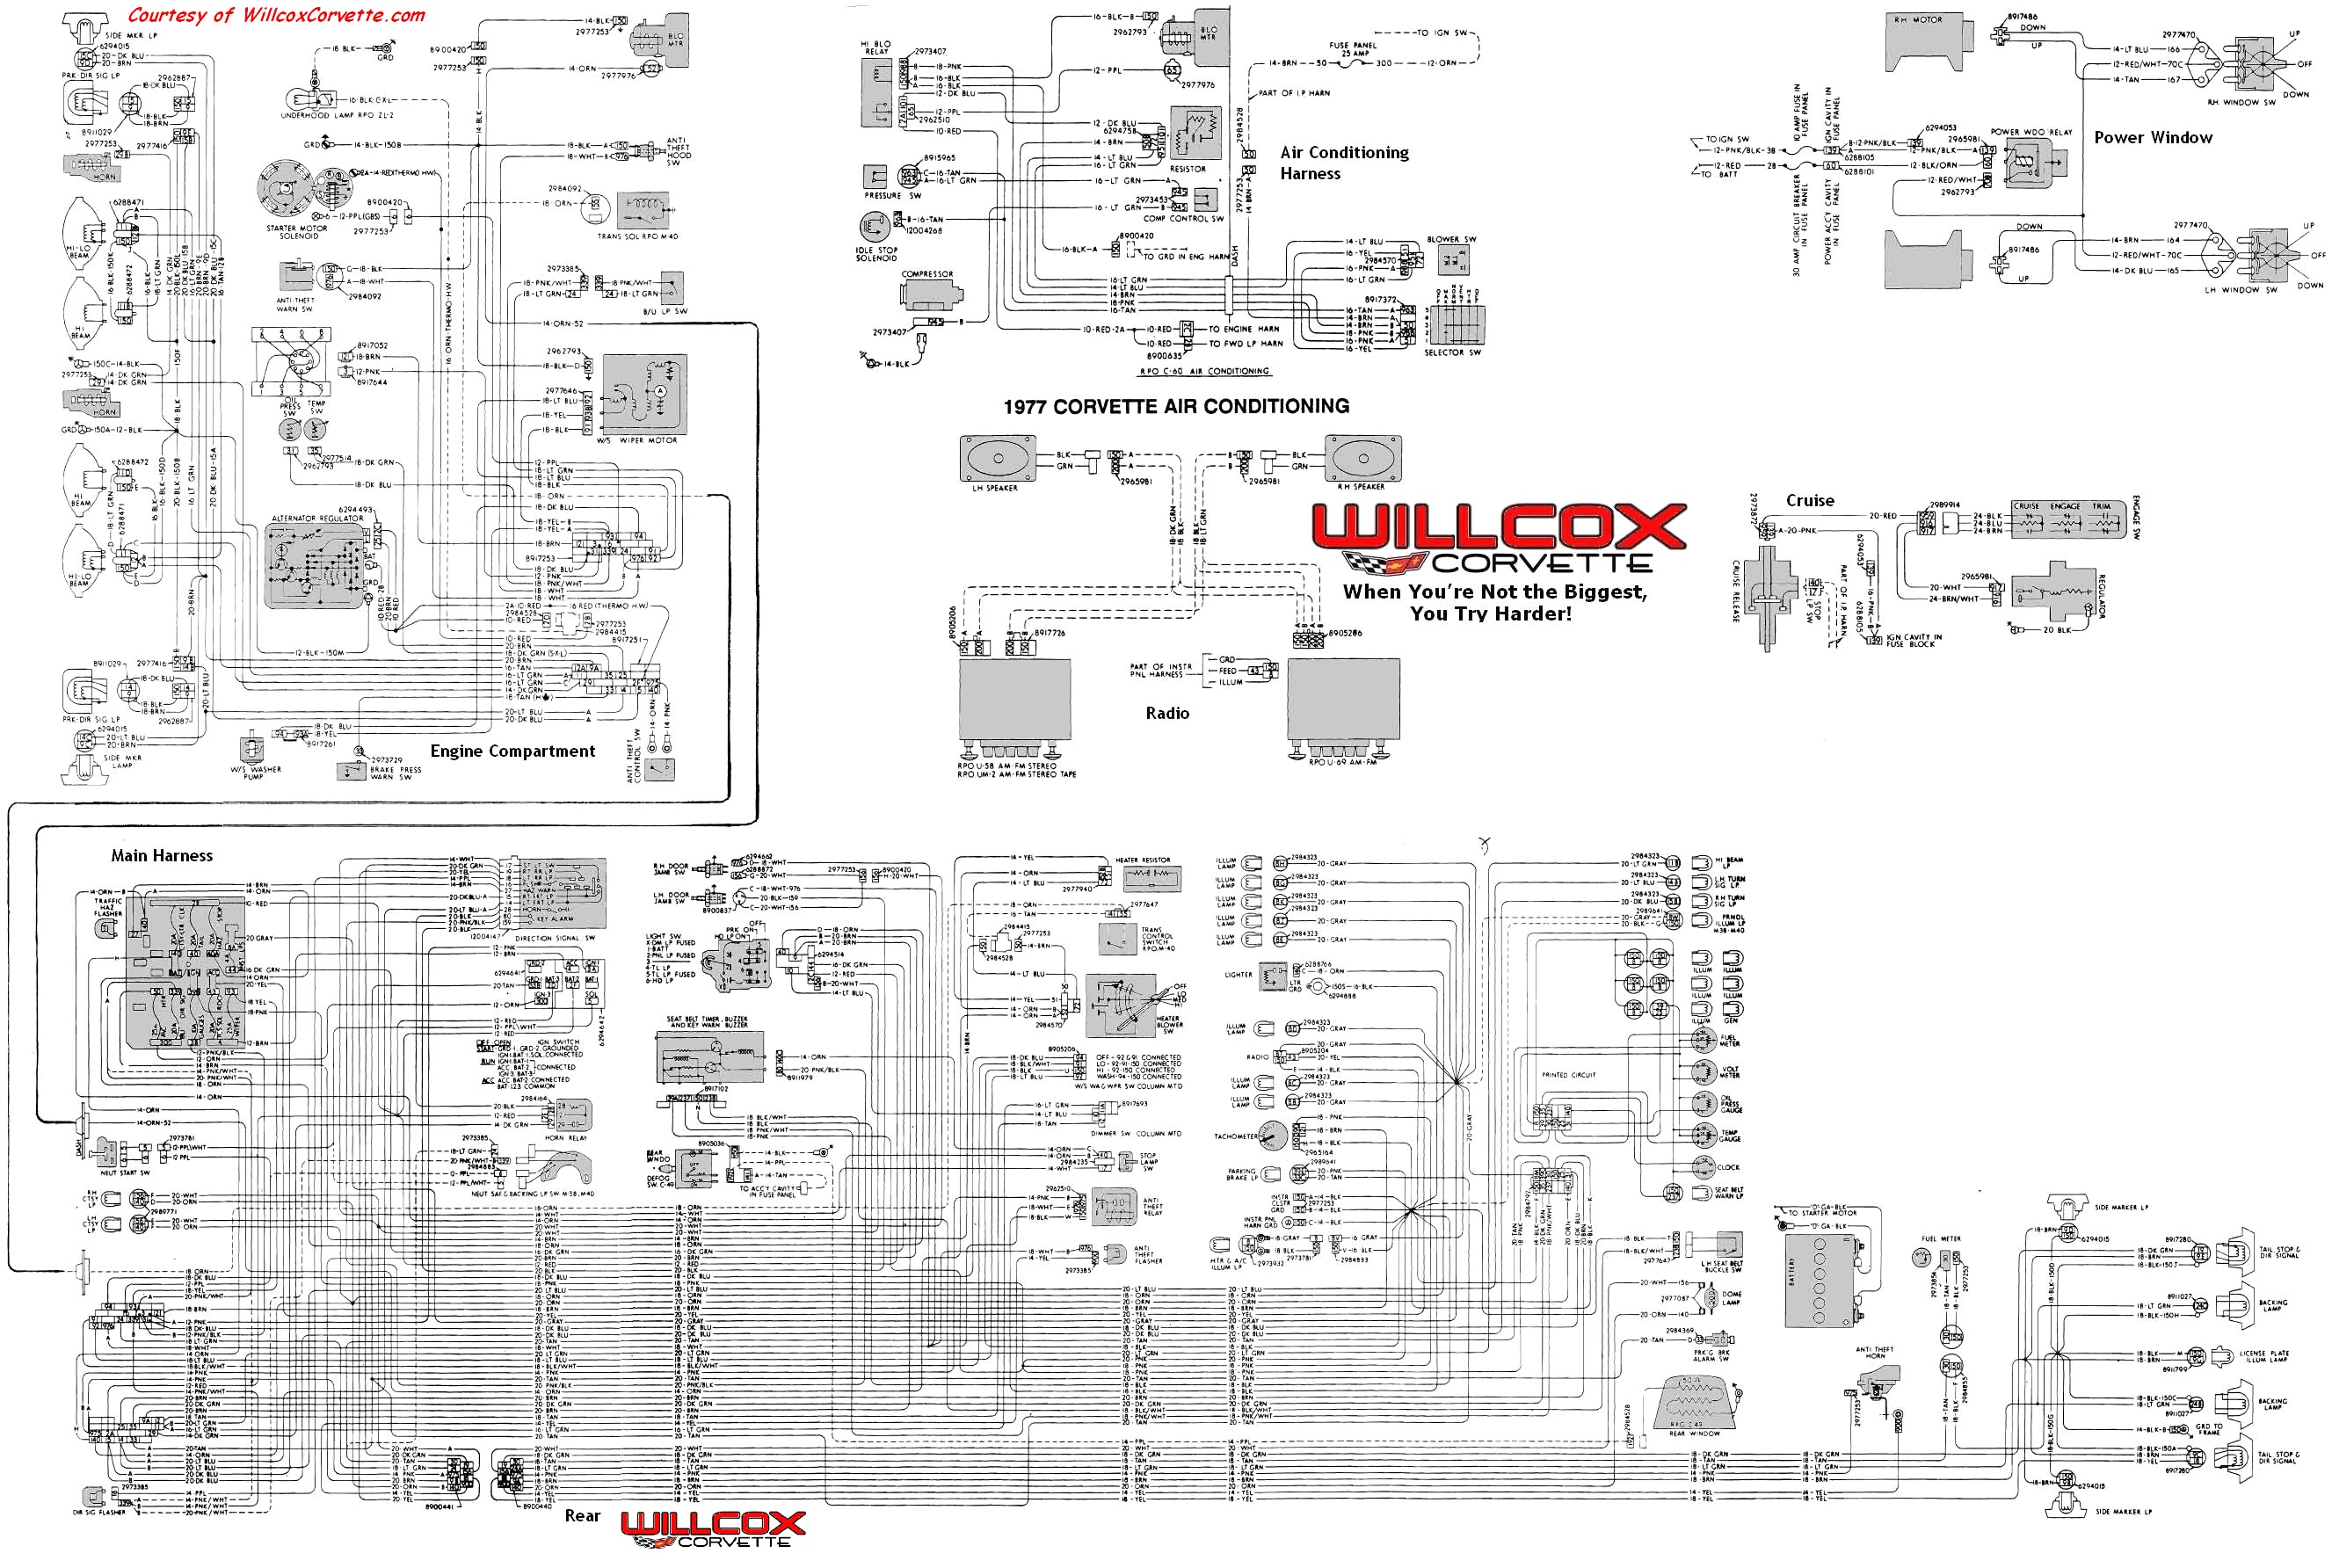 1976 Chevy Truck Wiring Diagram 76 Corvette Radiator Diagram 76 Get Free Image About Wiring Diagram Of 1976 Chevy Truck Wiring Diagram